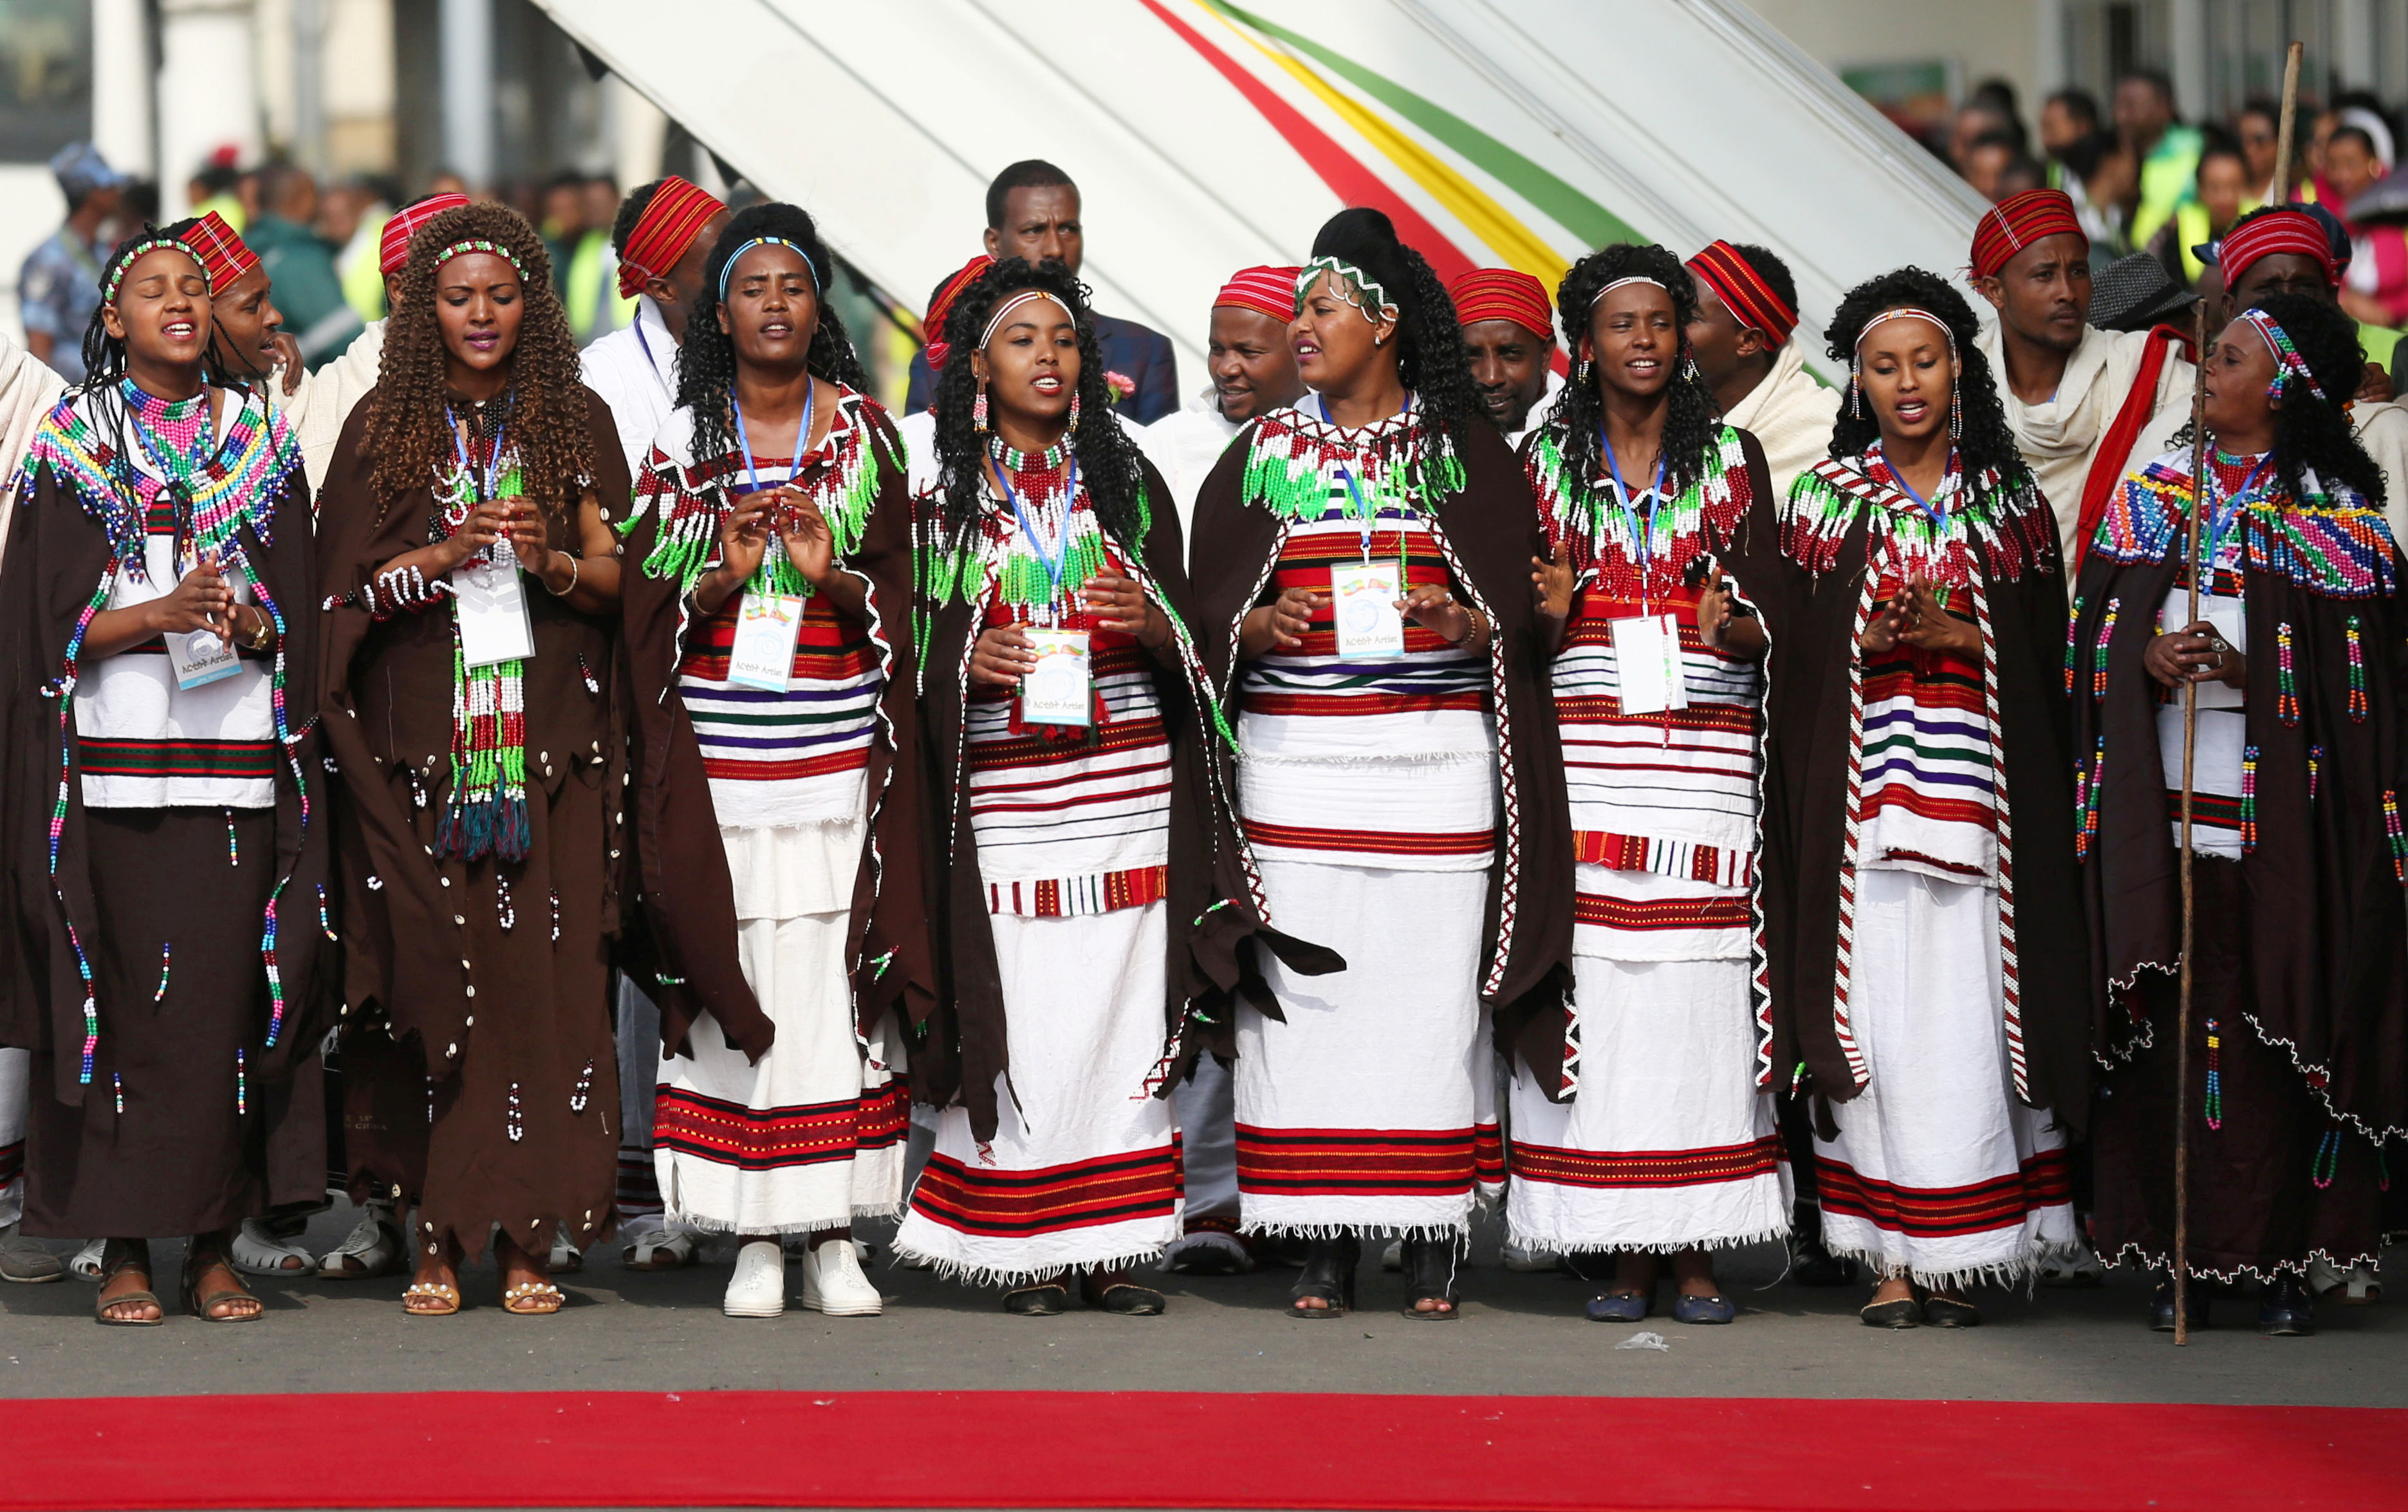 Traditional dancers perform during the welcoming ceremony of Eritrea's President Isaias Afwerki arriving for a three-day visit, at the Bole international airport in Addis Ababa, Ethiopia July 14, 2018.